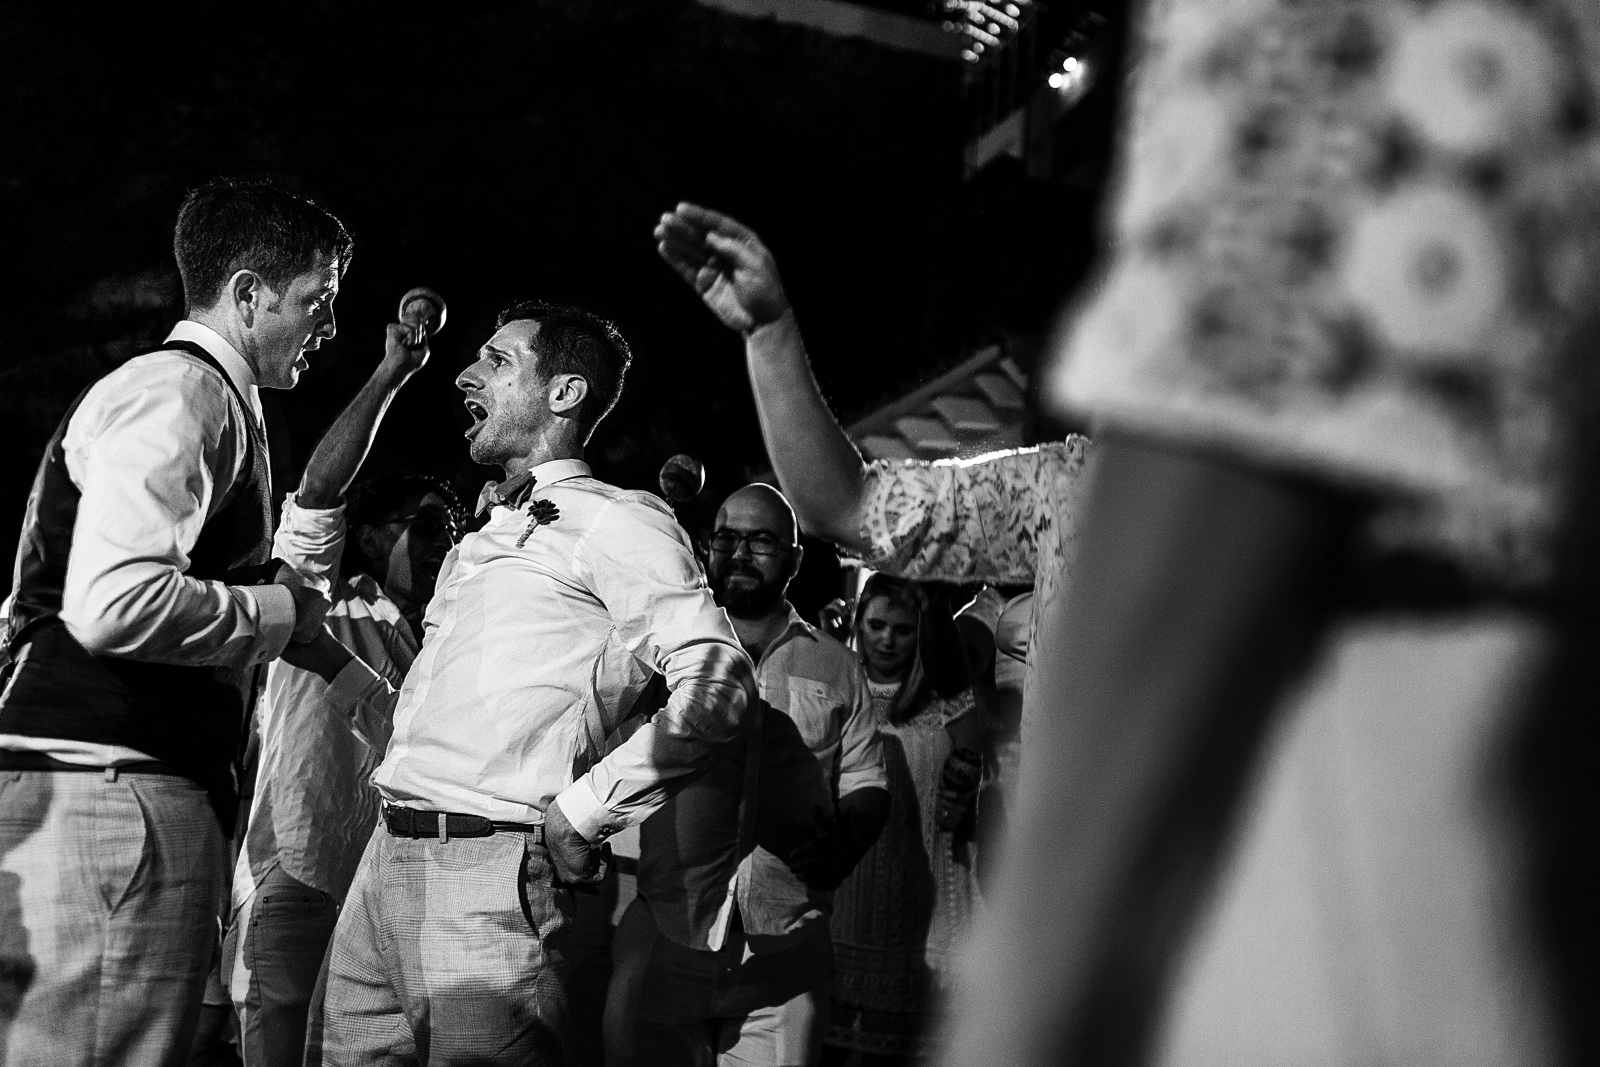 Grooms dance with guests at their wedding reception